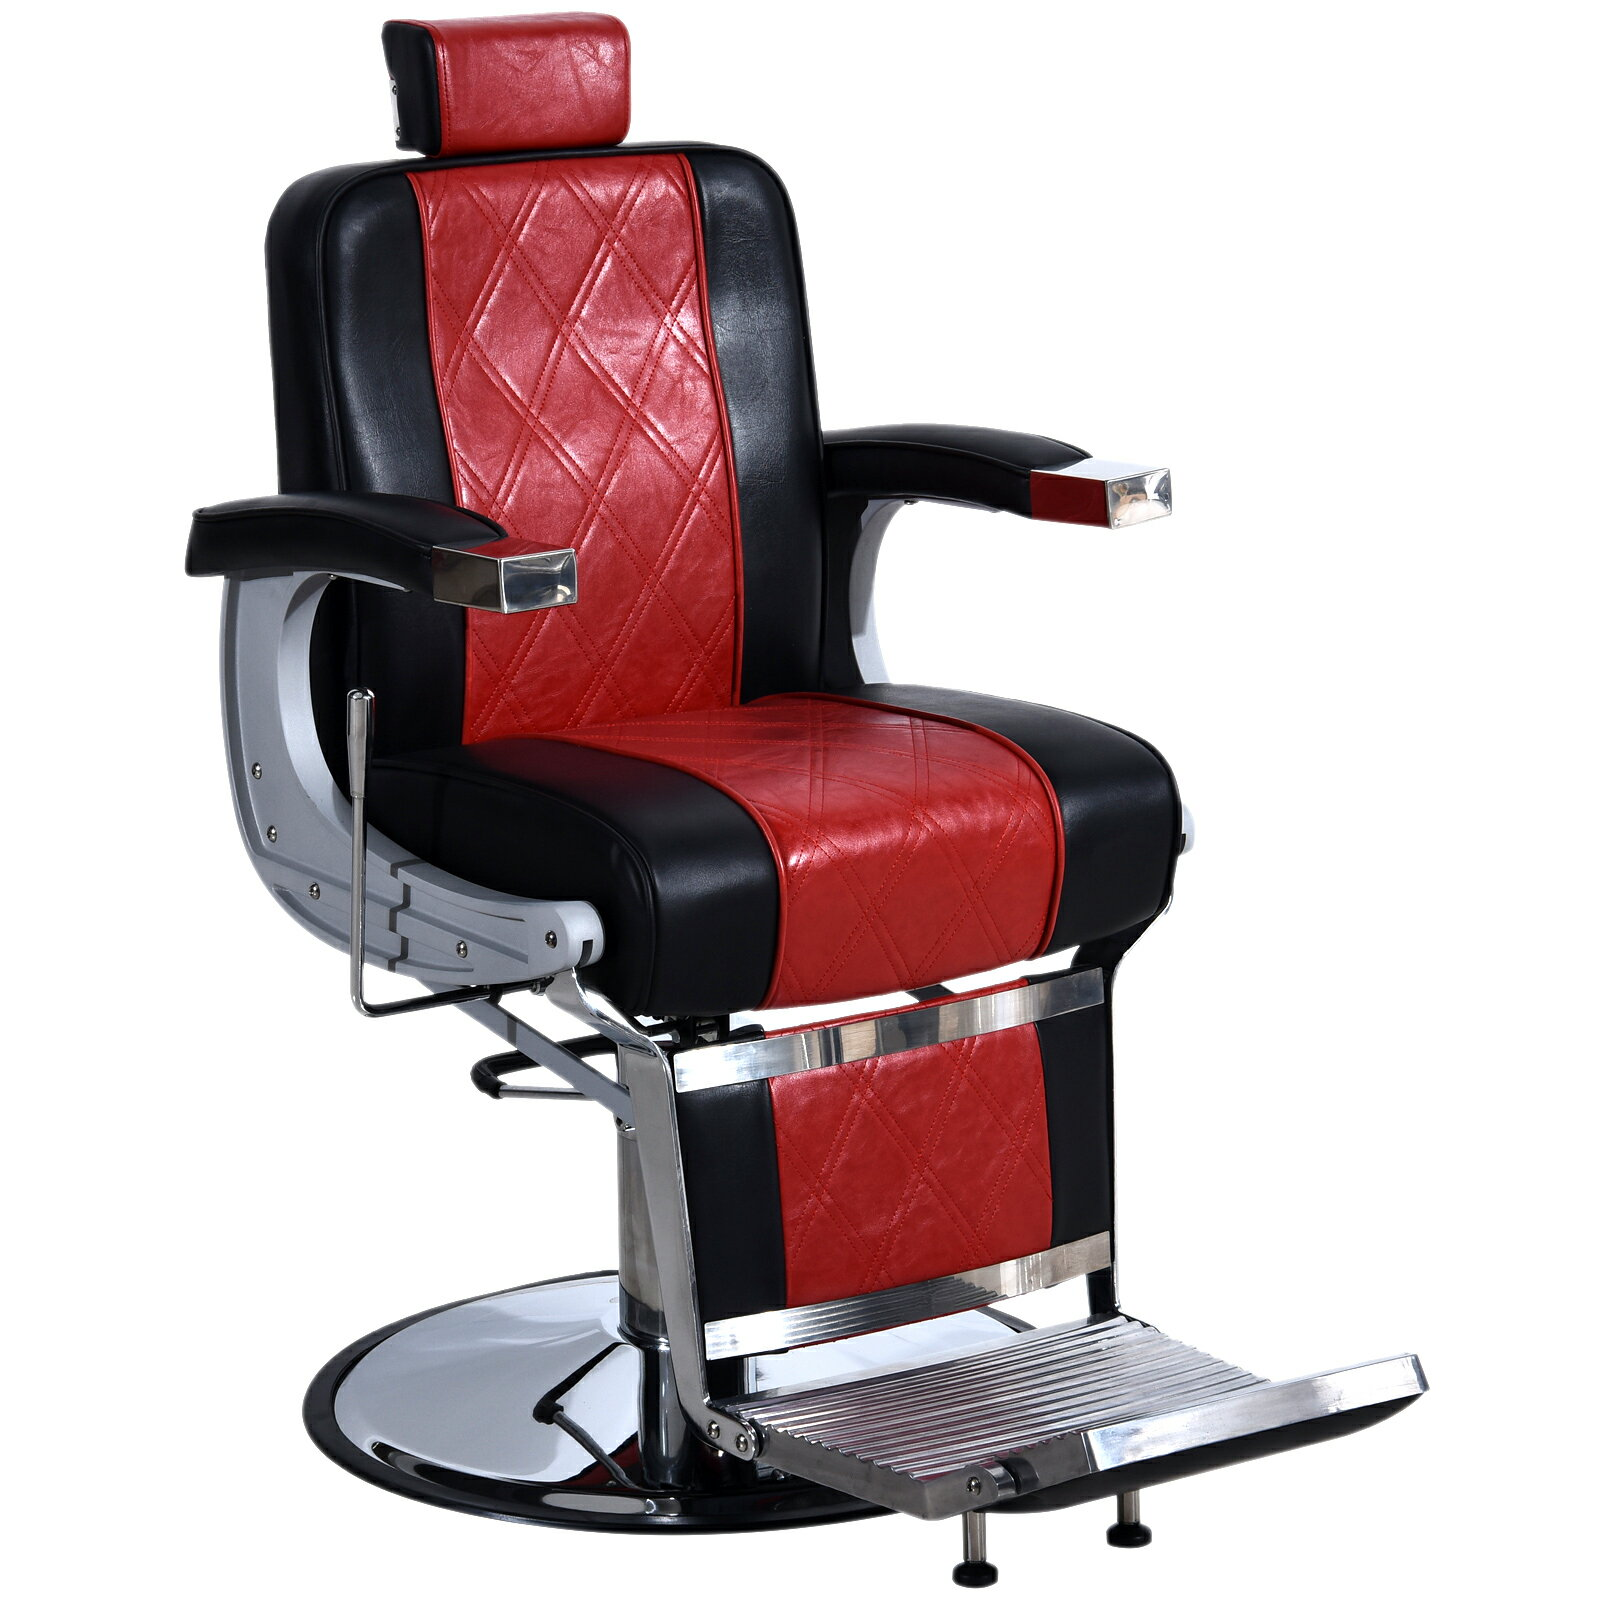 Factory Direct: Classic Hydraulic Barber Chair Styling Salon